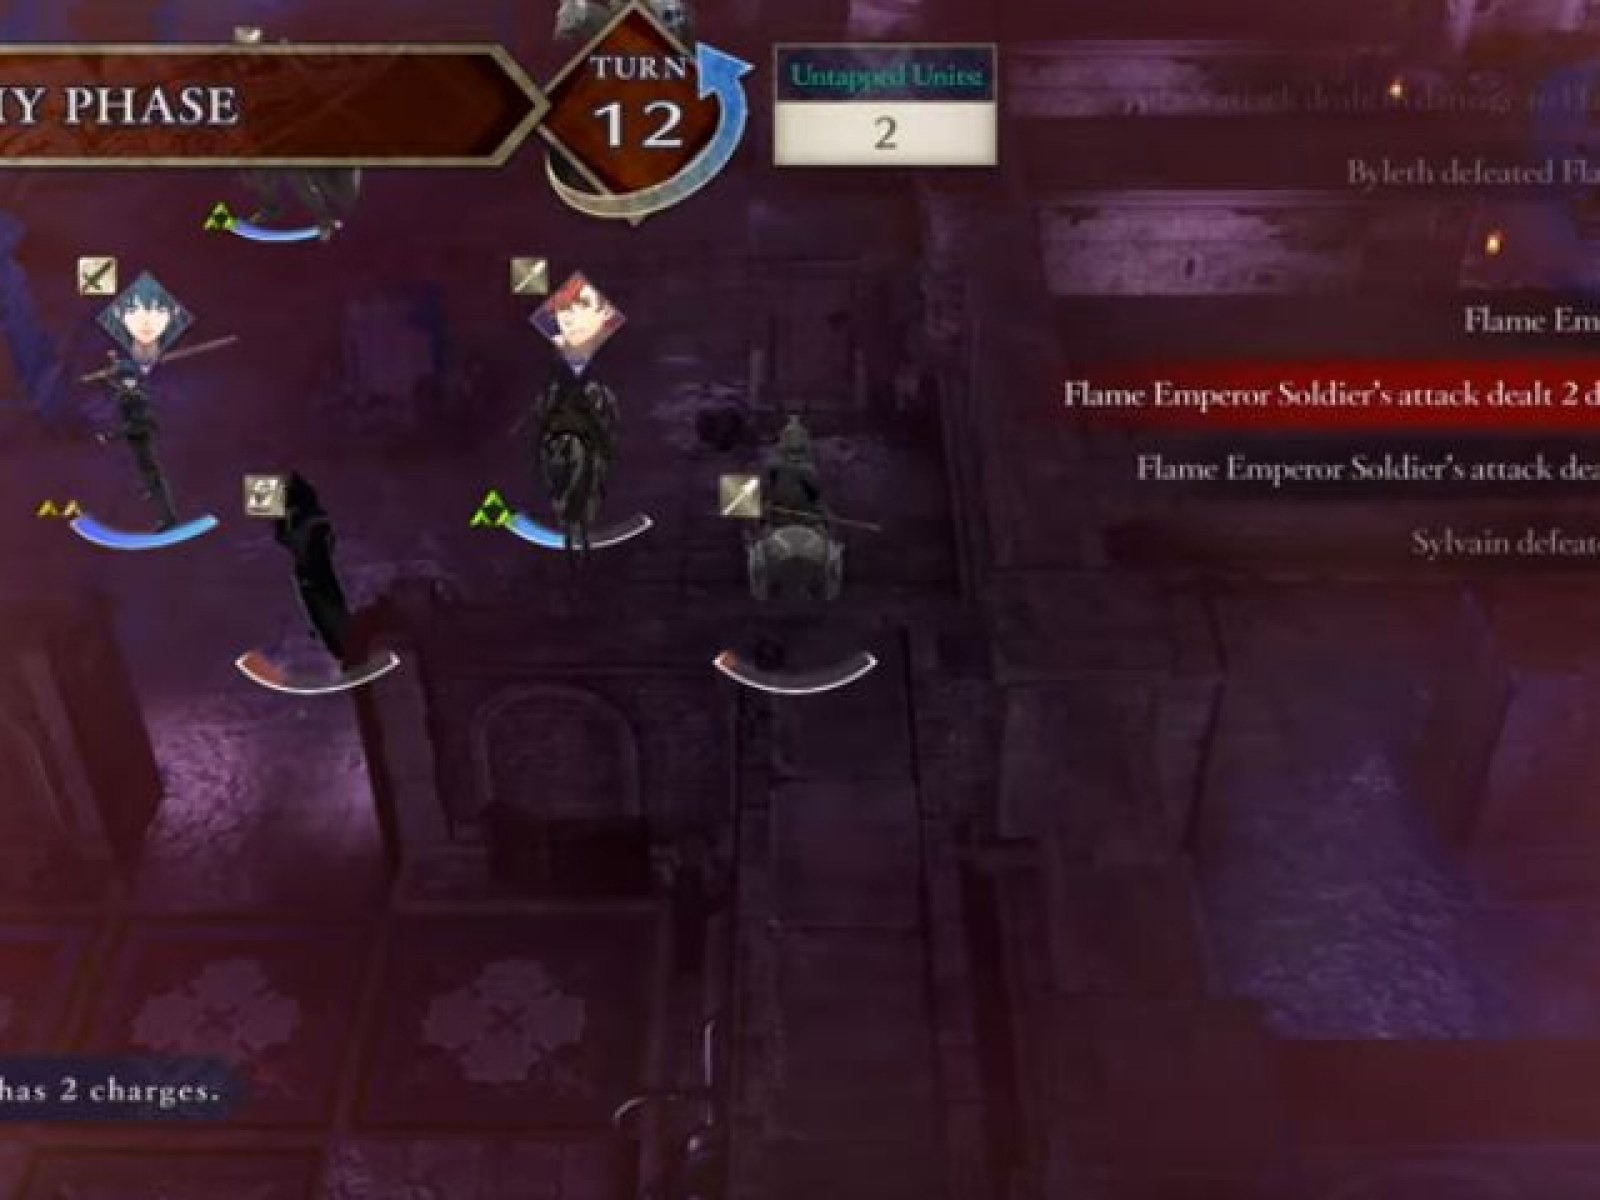 Fire Emblem: Three Houses' Support Mechanics and Battle Gameplay